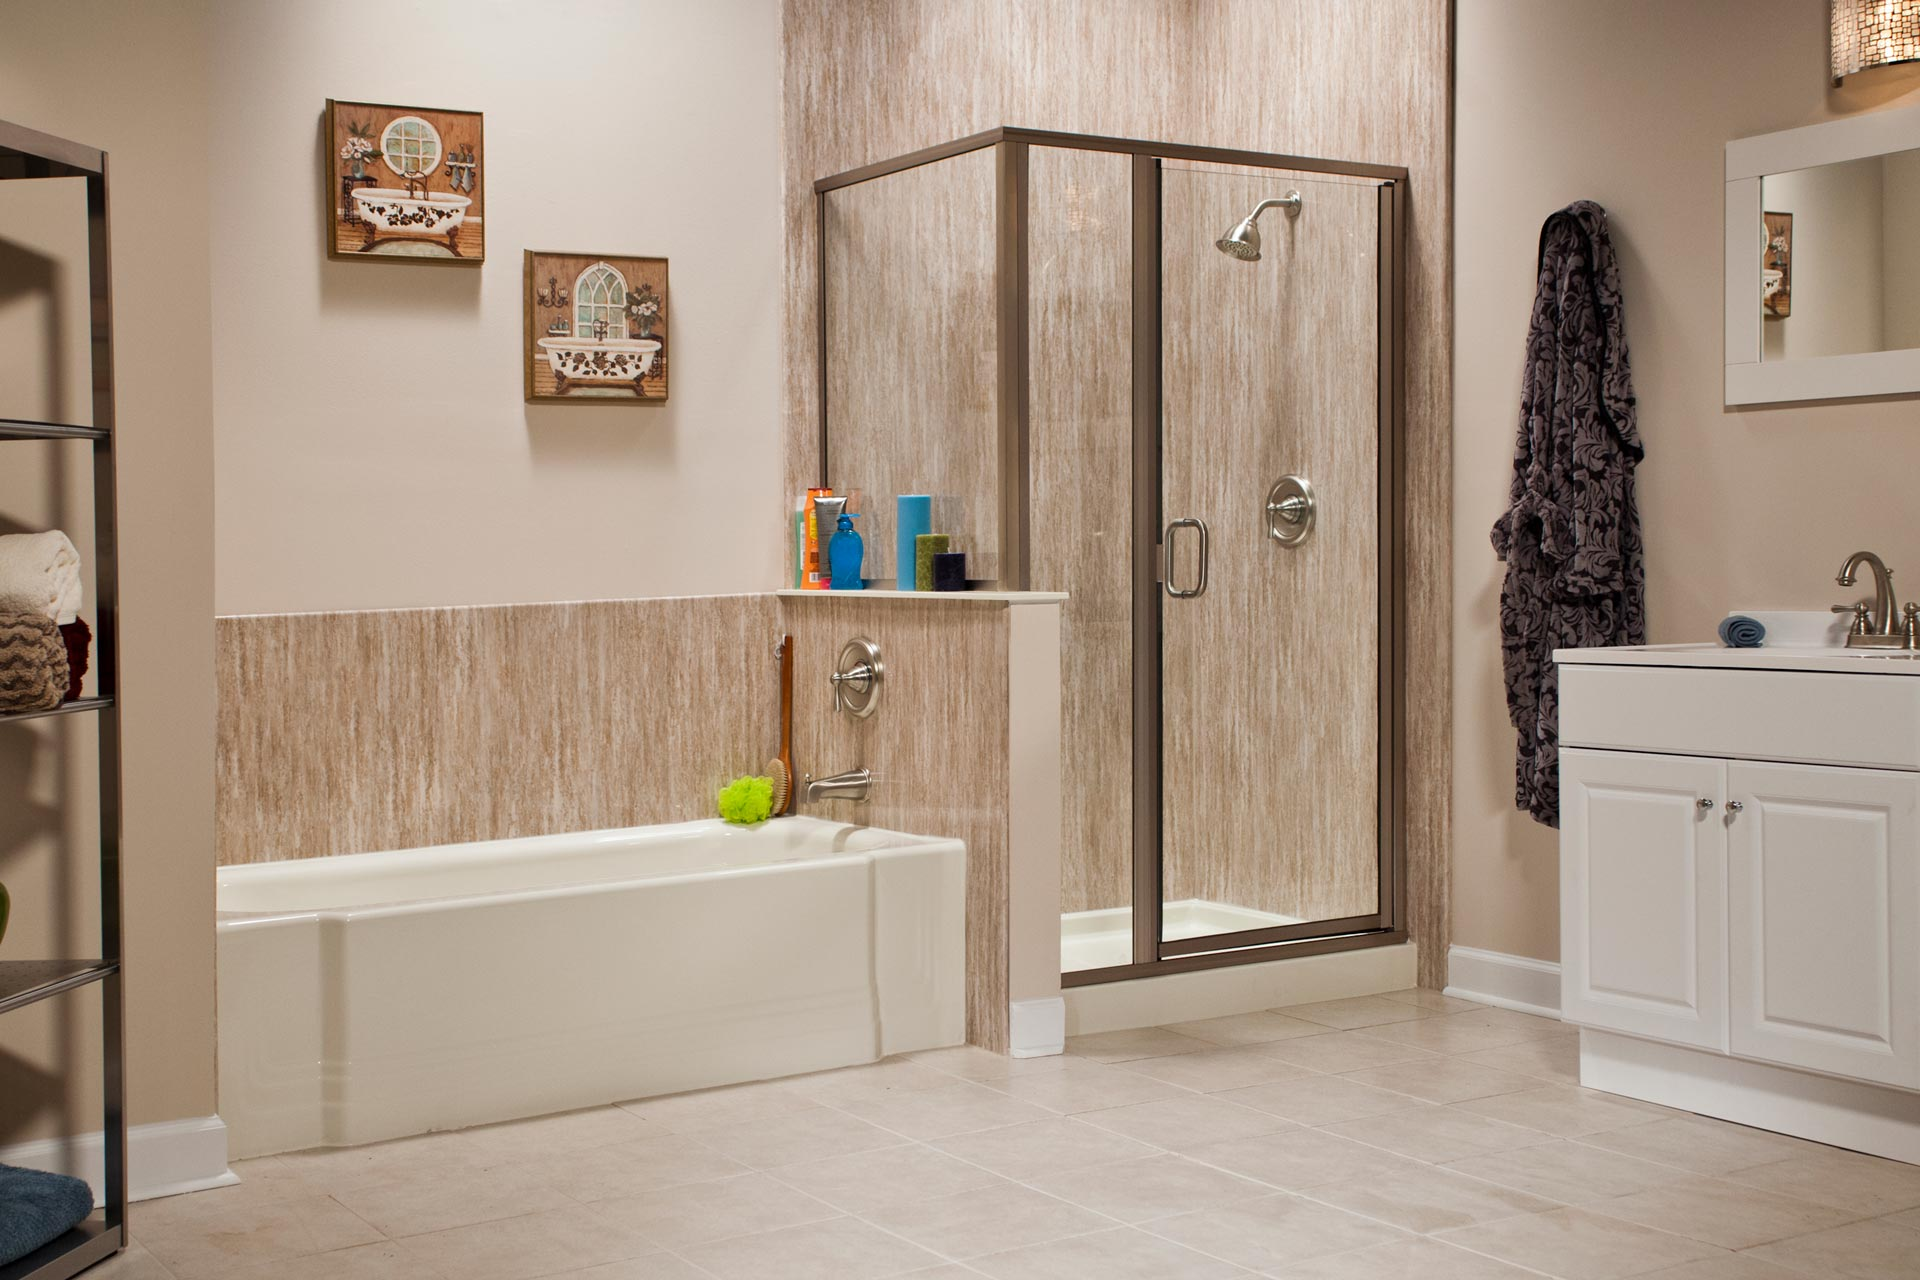 A beautiful, remodeled bathroom with natural stone wall surround, soaking tub, and walk-in shower.